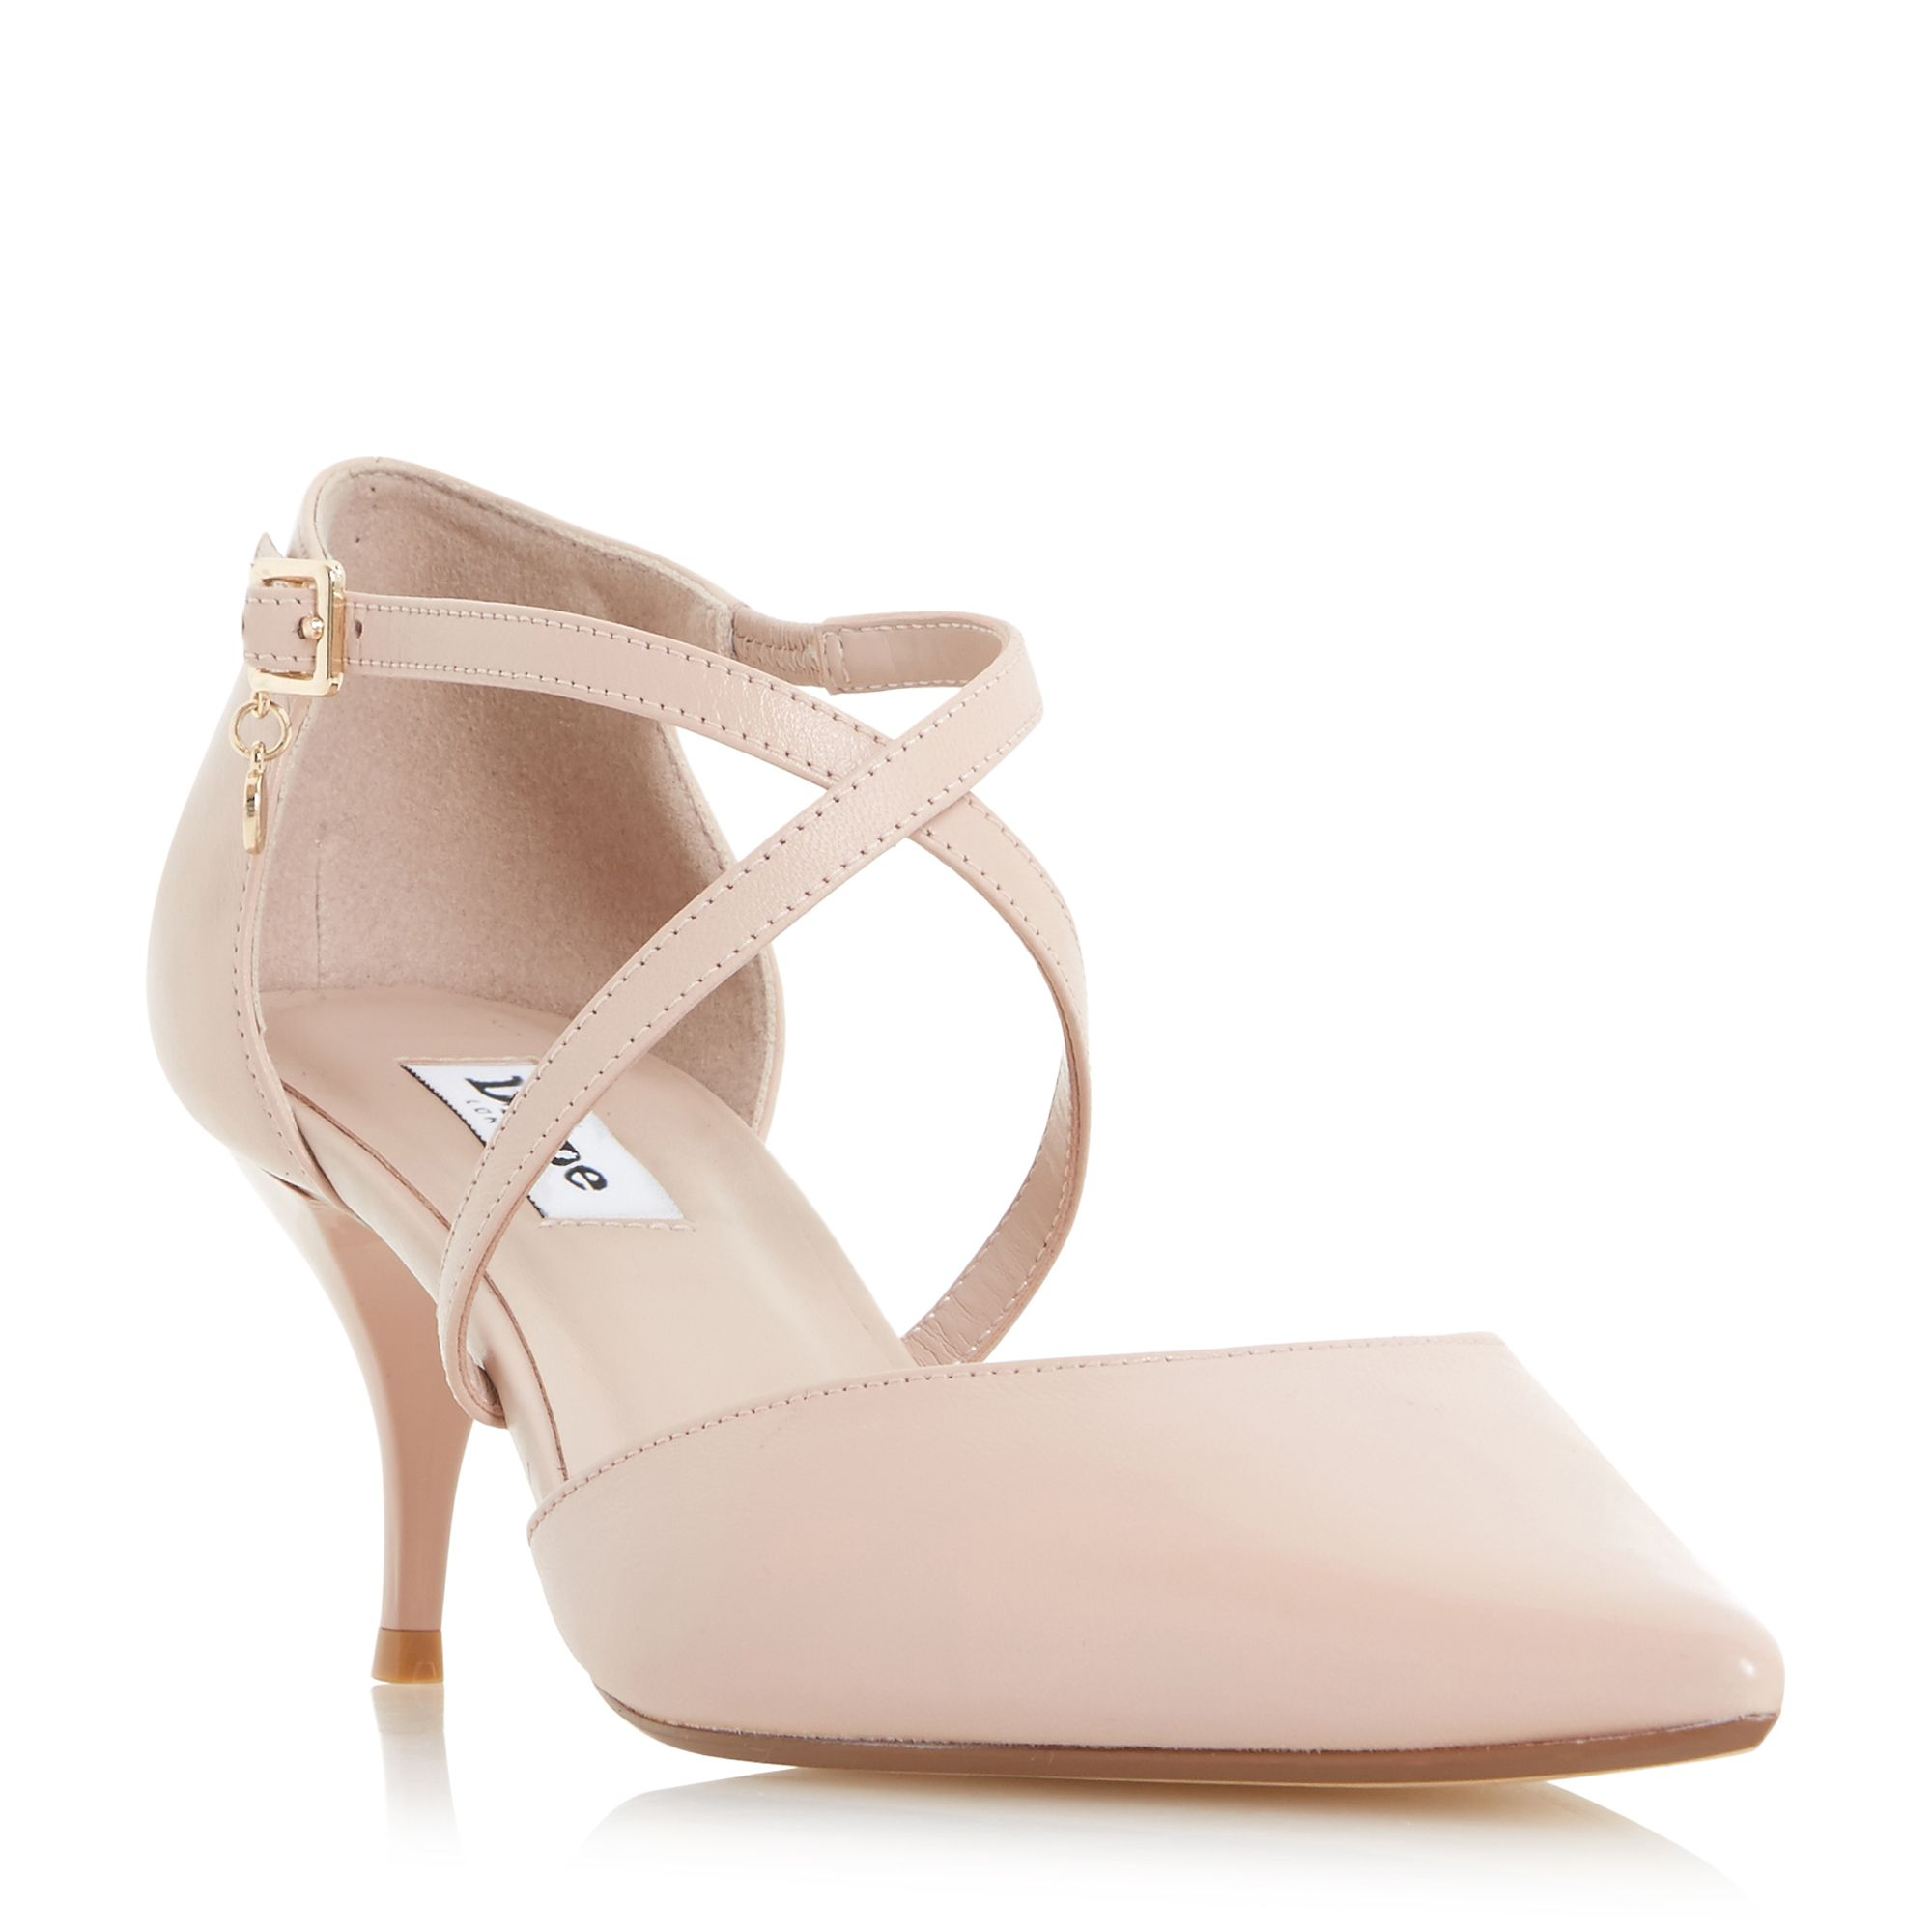 Dune Courtnee Kitten Heel Court Shoe - House of Fraser